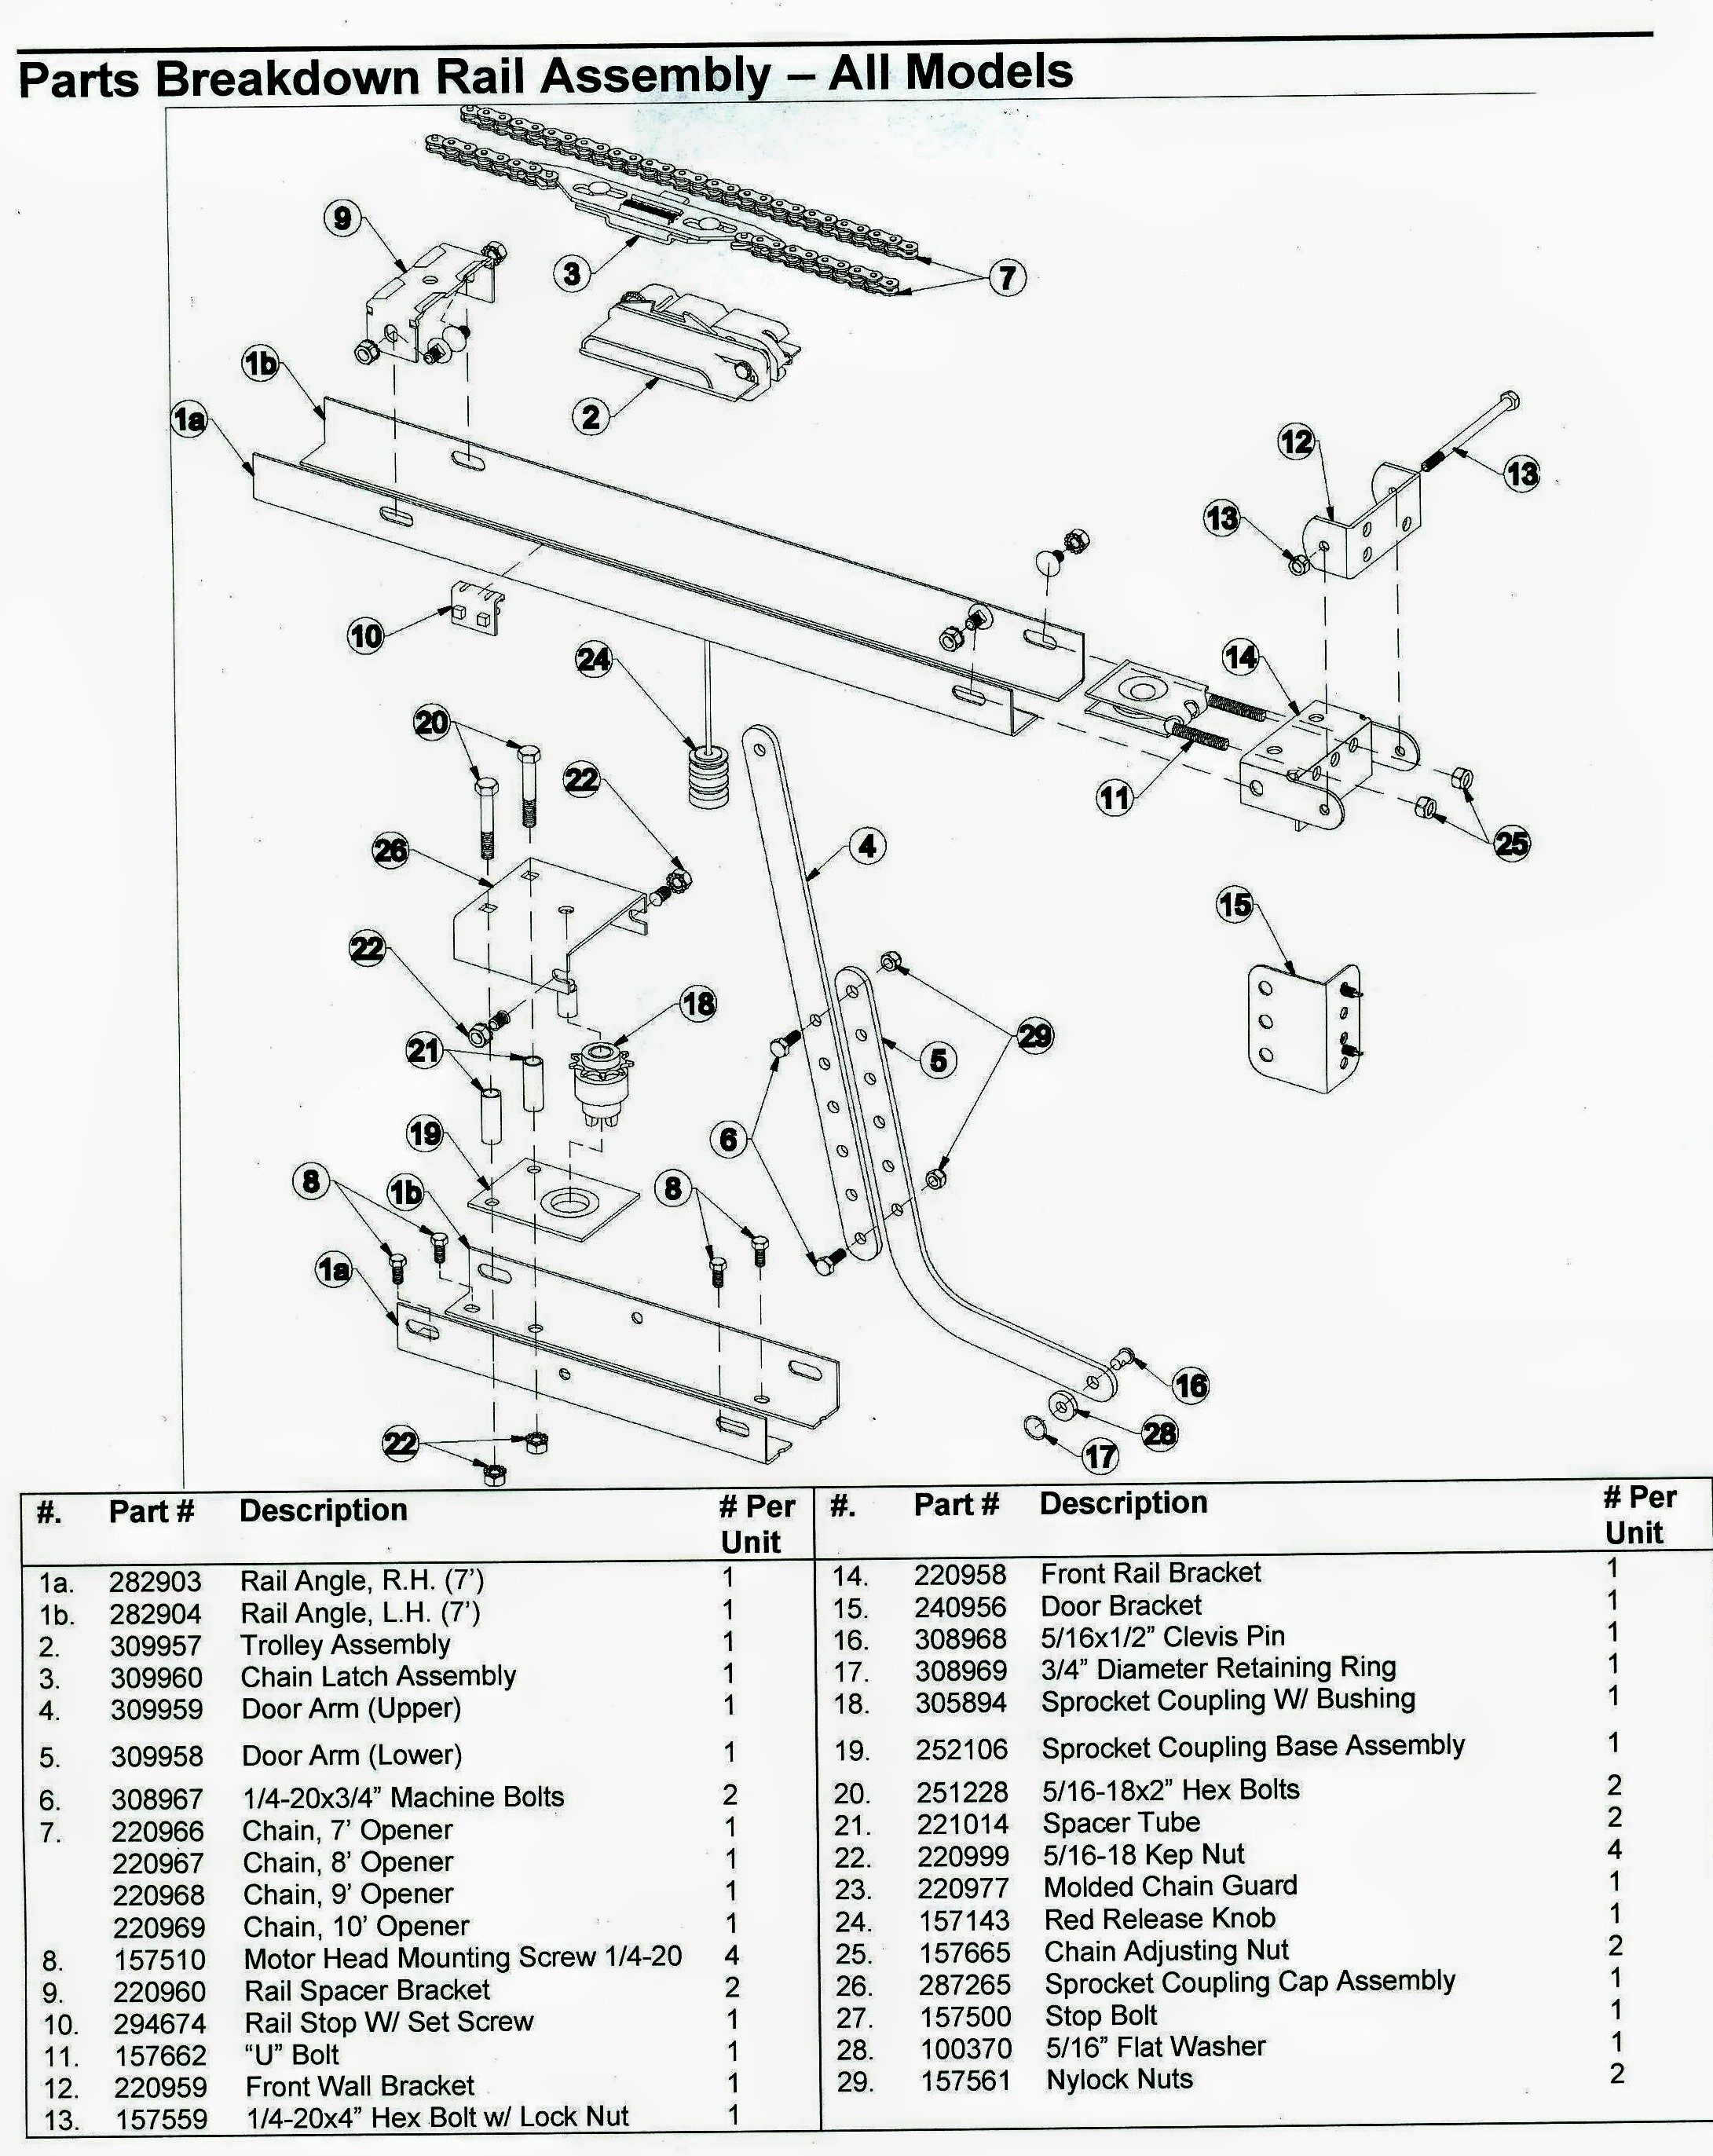 Wiring Diagram For Garage Door Opener With 00050221 00001 with Craftsman Garage Door Opener Parts Diagram